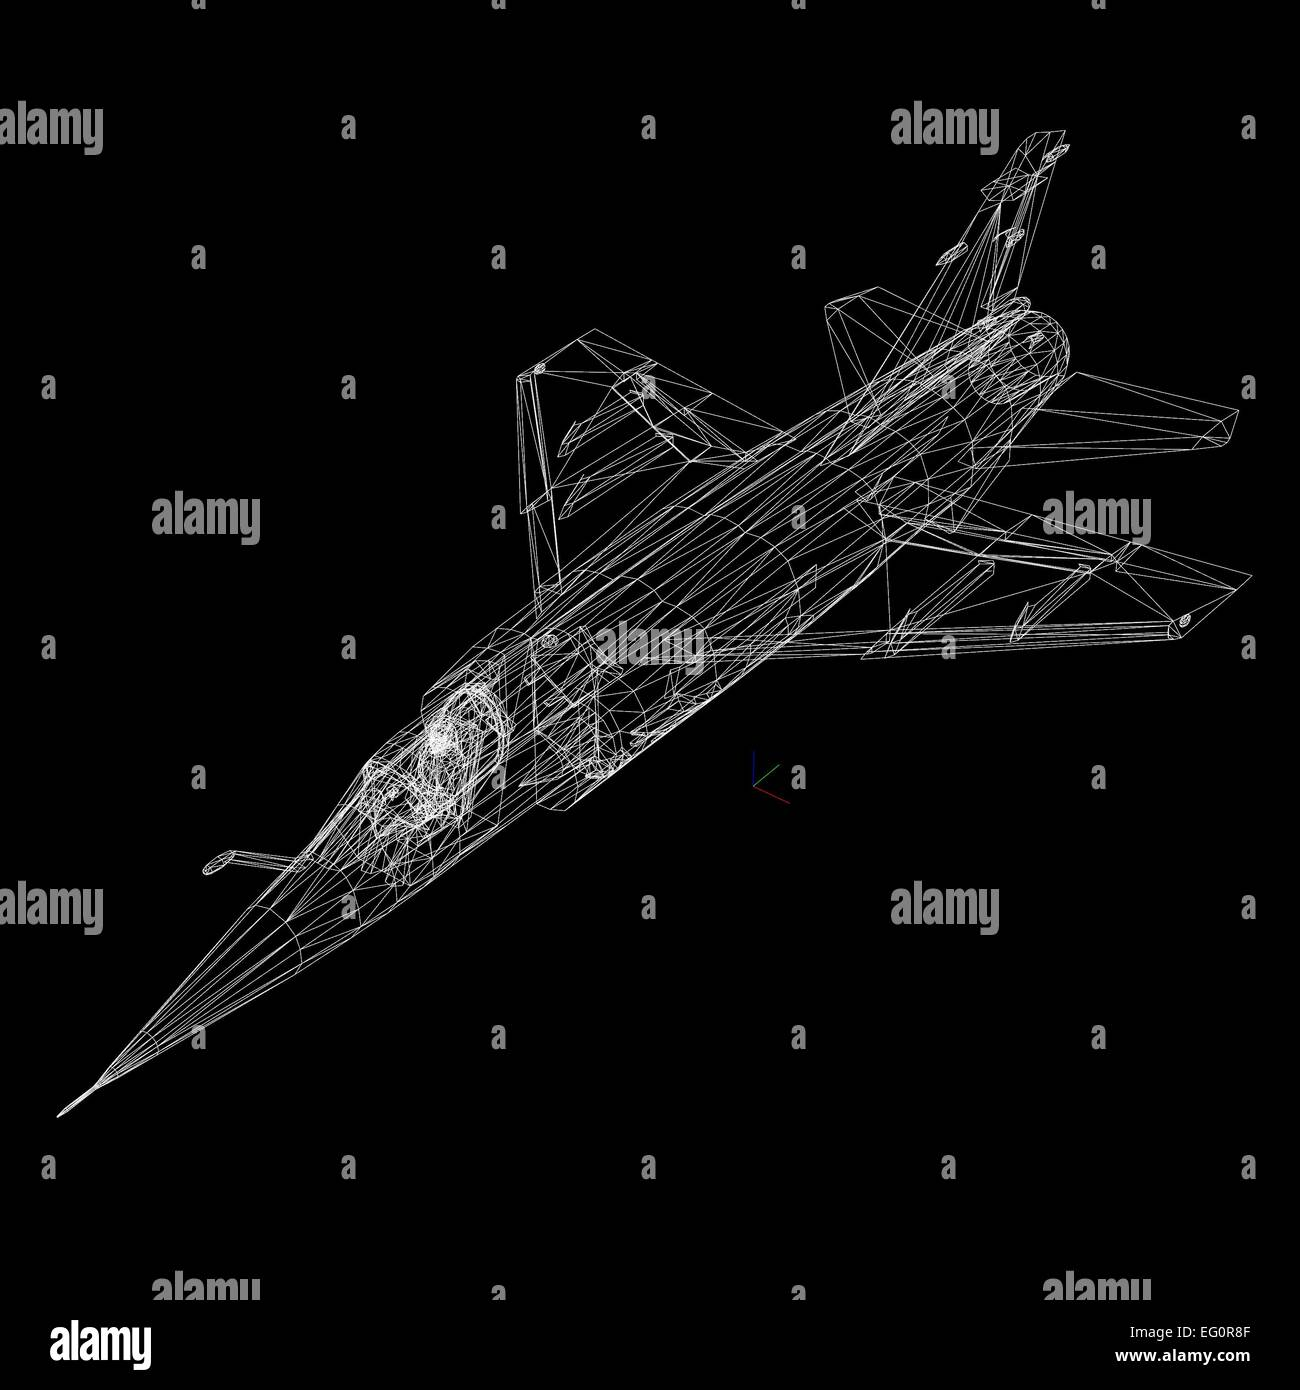 3D model of airplane isolated on BLACK  background - Stock Image